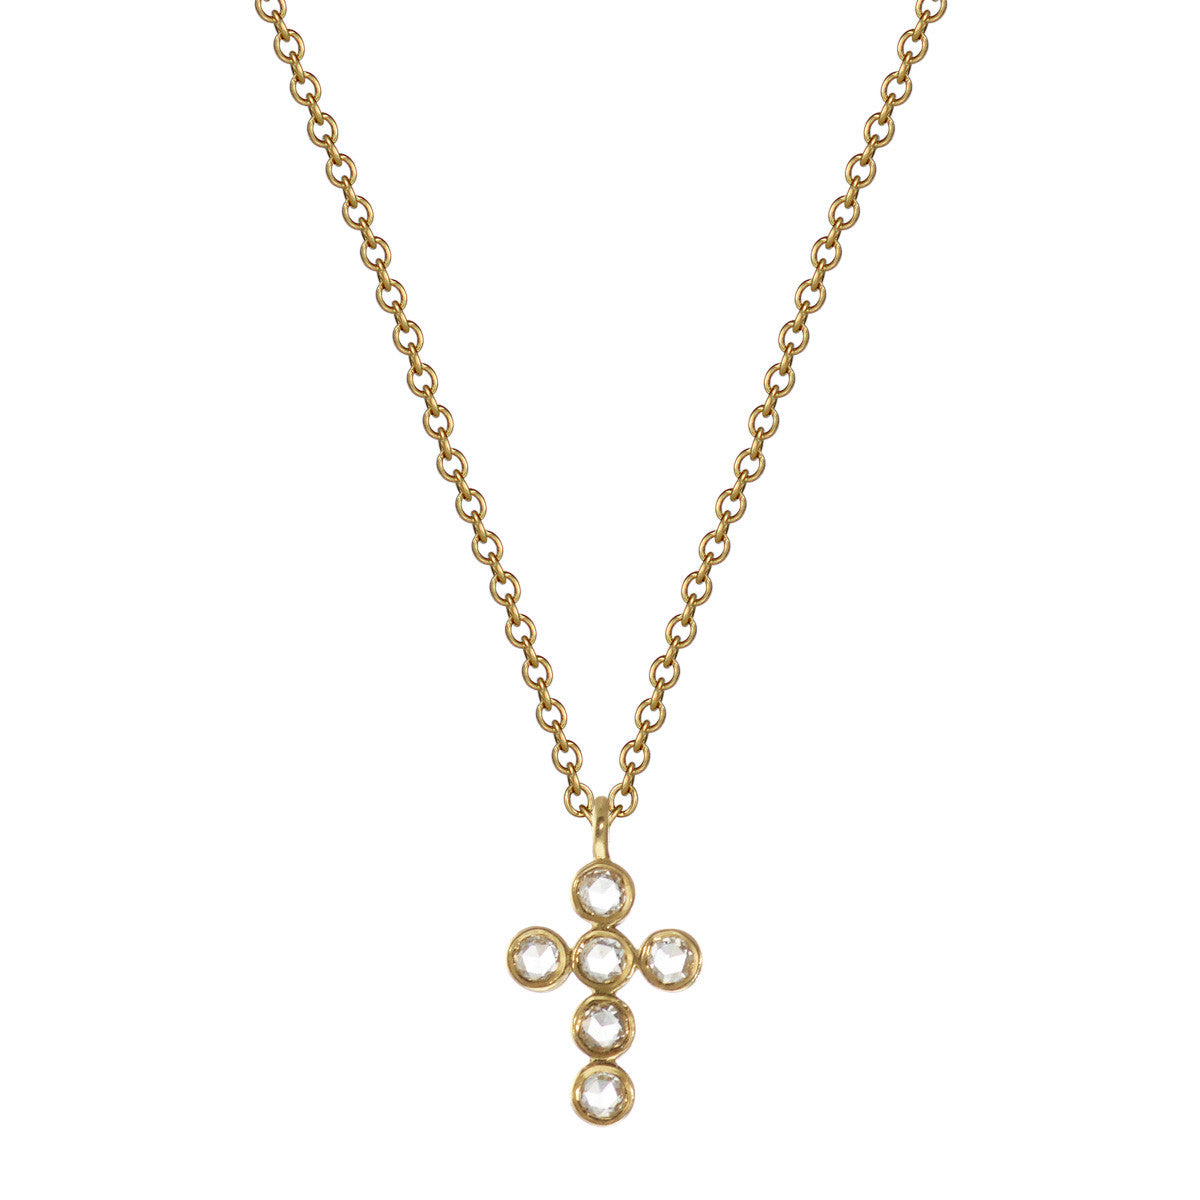 18K Gold Diamond Cross Pendant